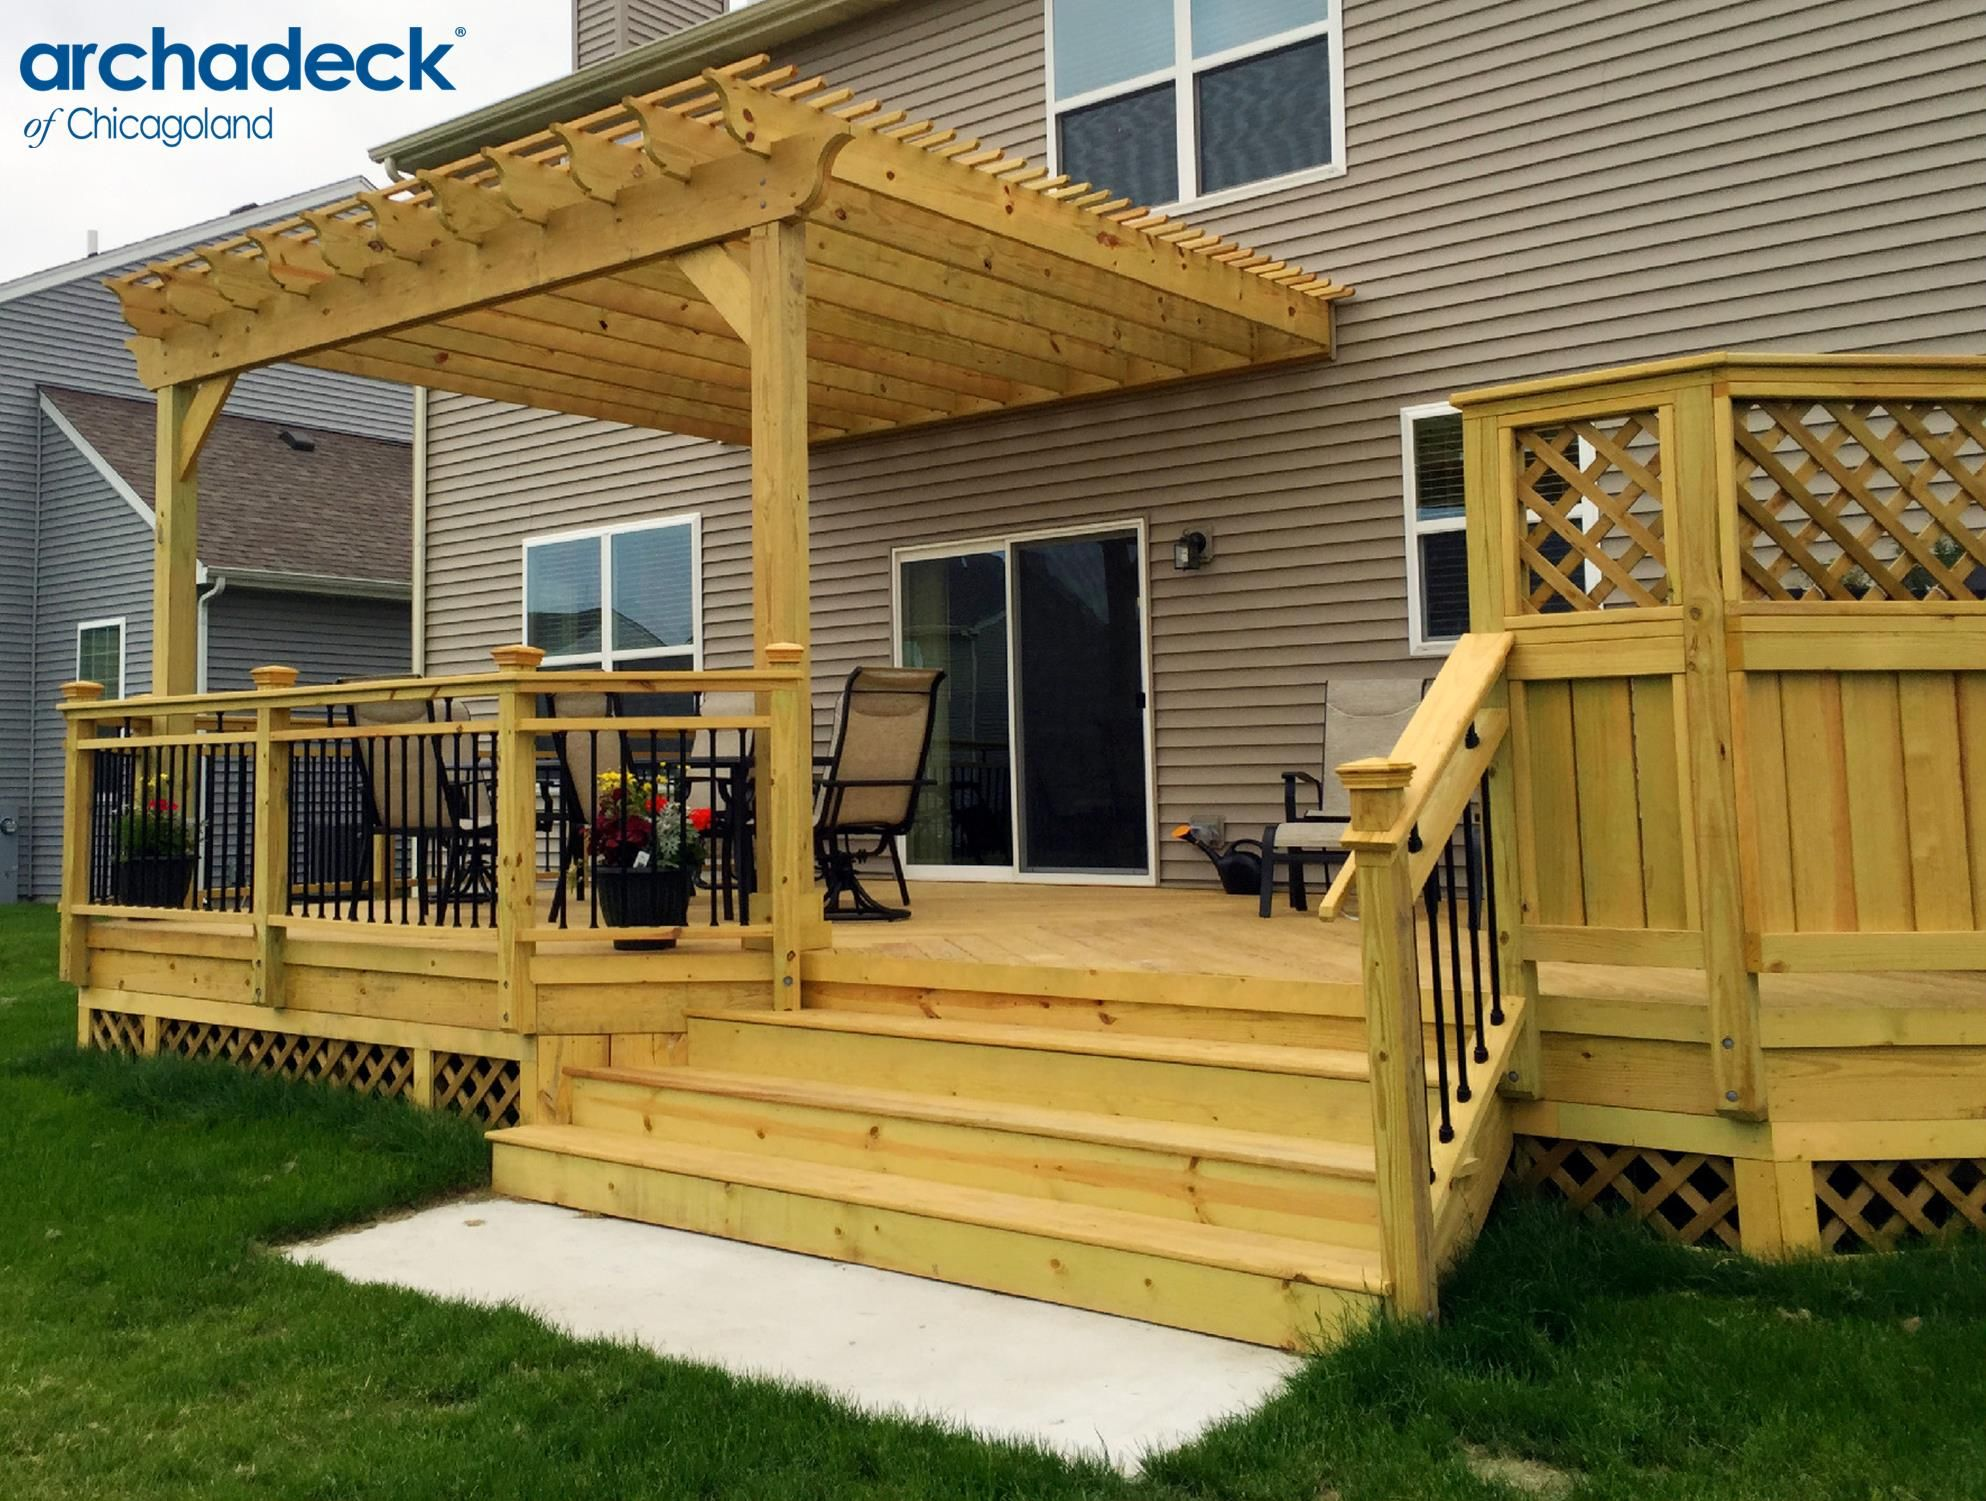 Best 25+ Covered Decks Ideas On Pinterest | Deck Covered, Covered Deck  Designs And Cover Patio Ideas